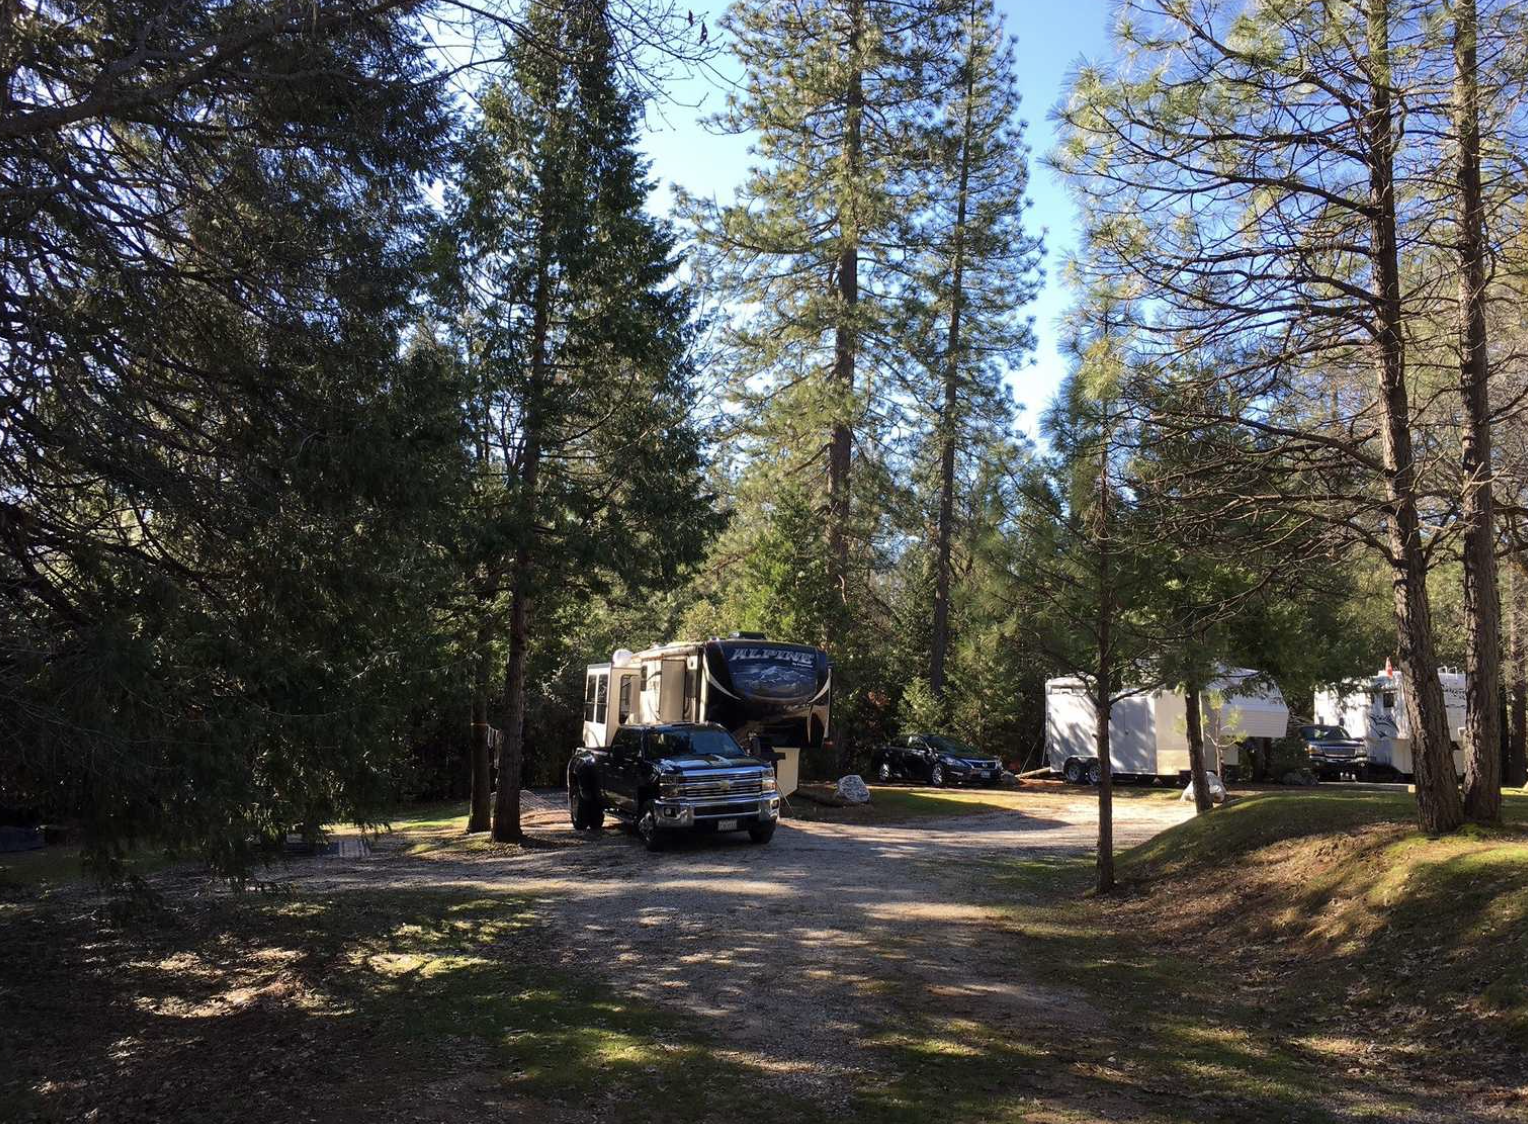 RV with truck parked in front in the woods at the campground.